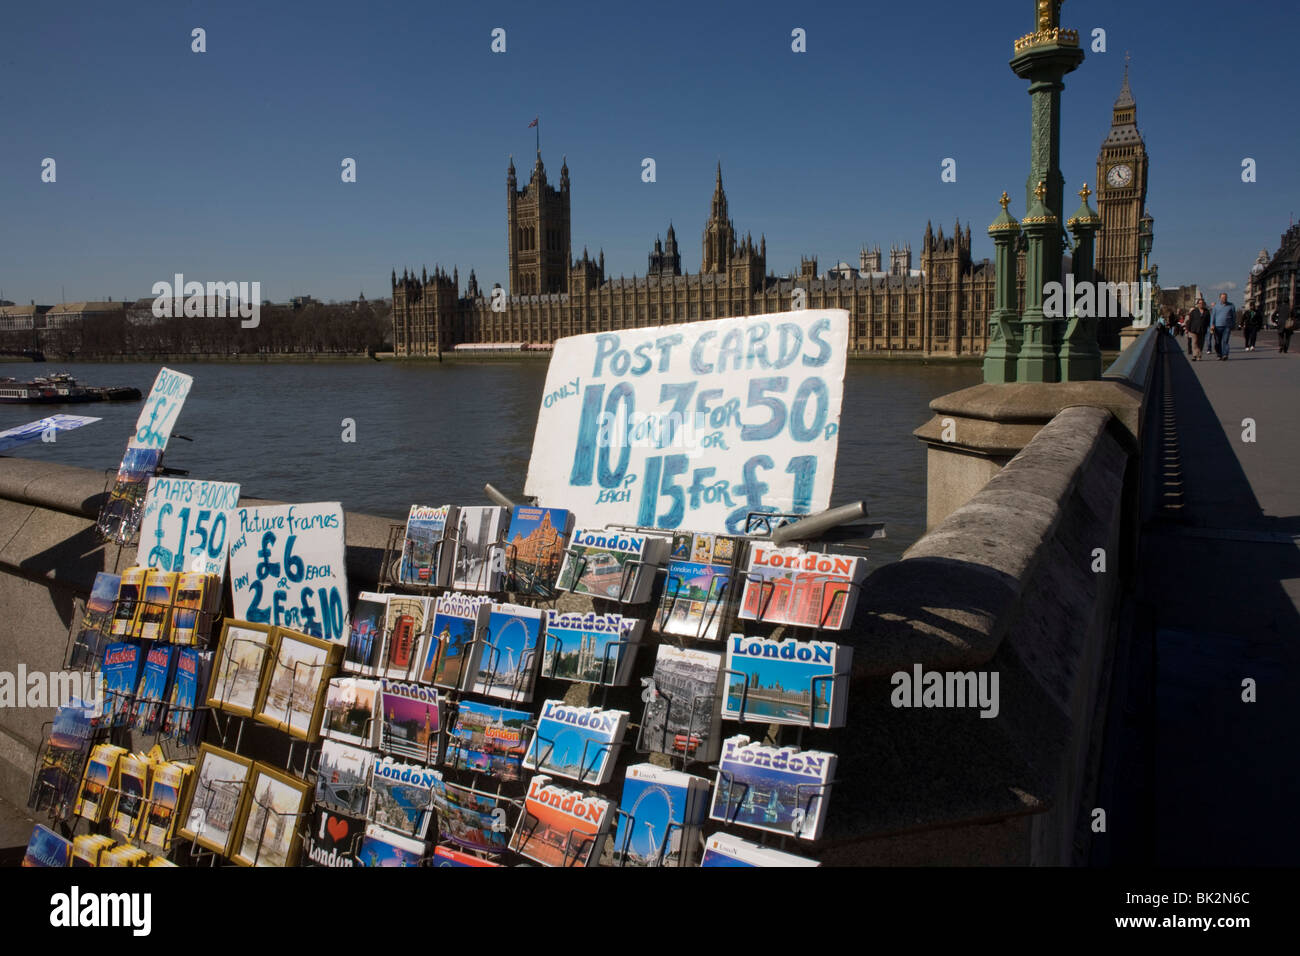 Elizabeth Tower amid the Gothic architecture of Britain's Houses of Parliament and tourist postcards displayed - Stock Image